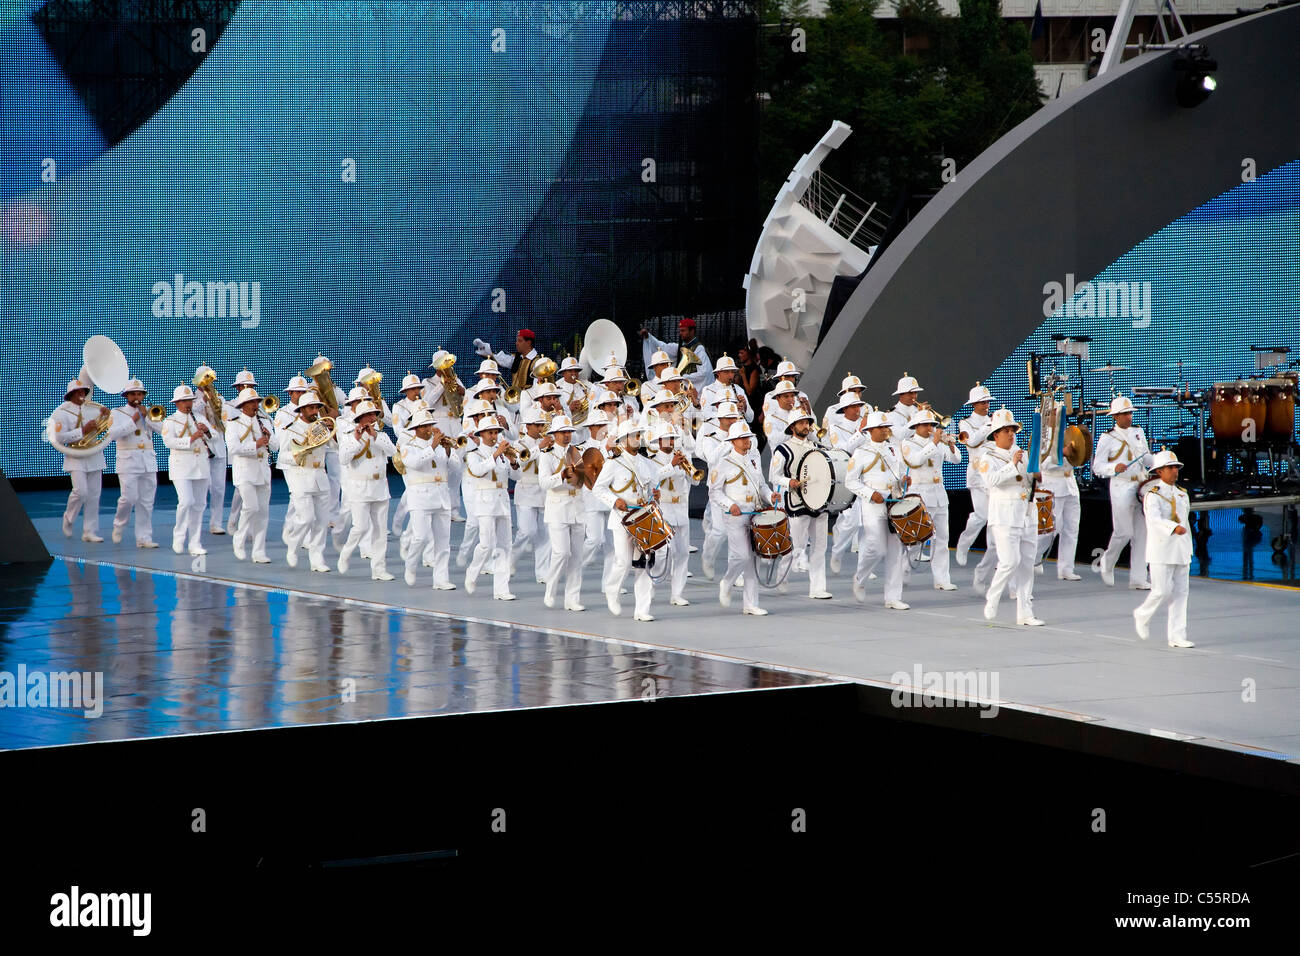 Athens 2011 Special Olympics Opening Ceremony - Navy's band entering stadium while playing - Stock Image